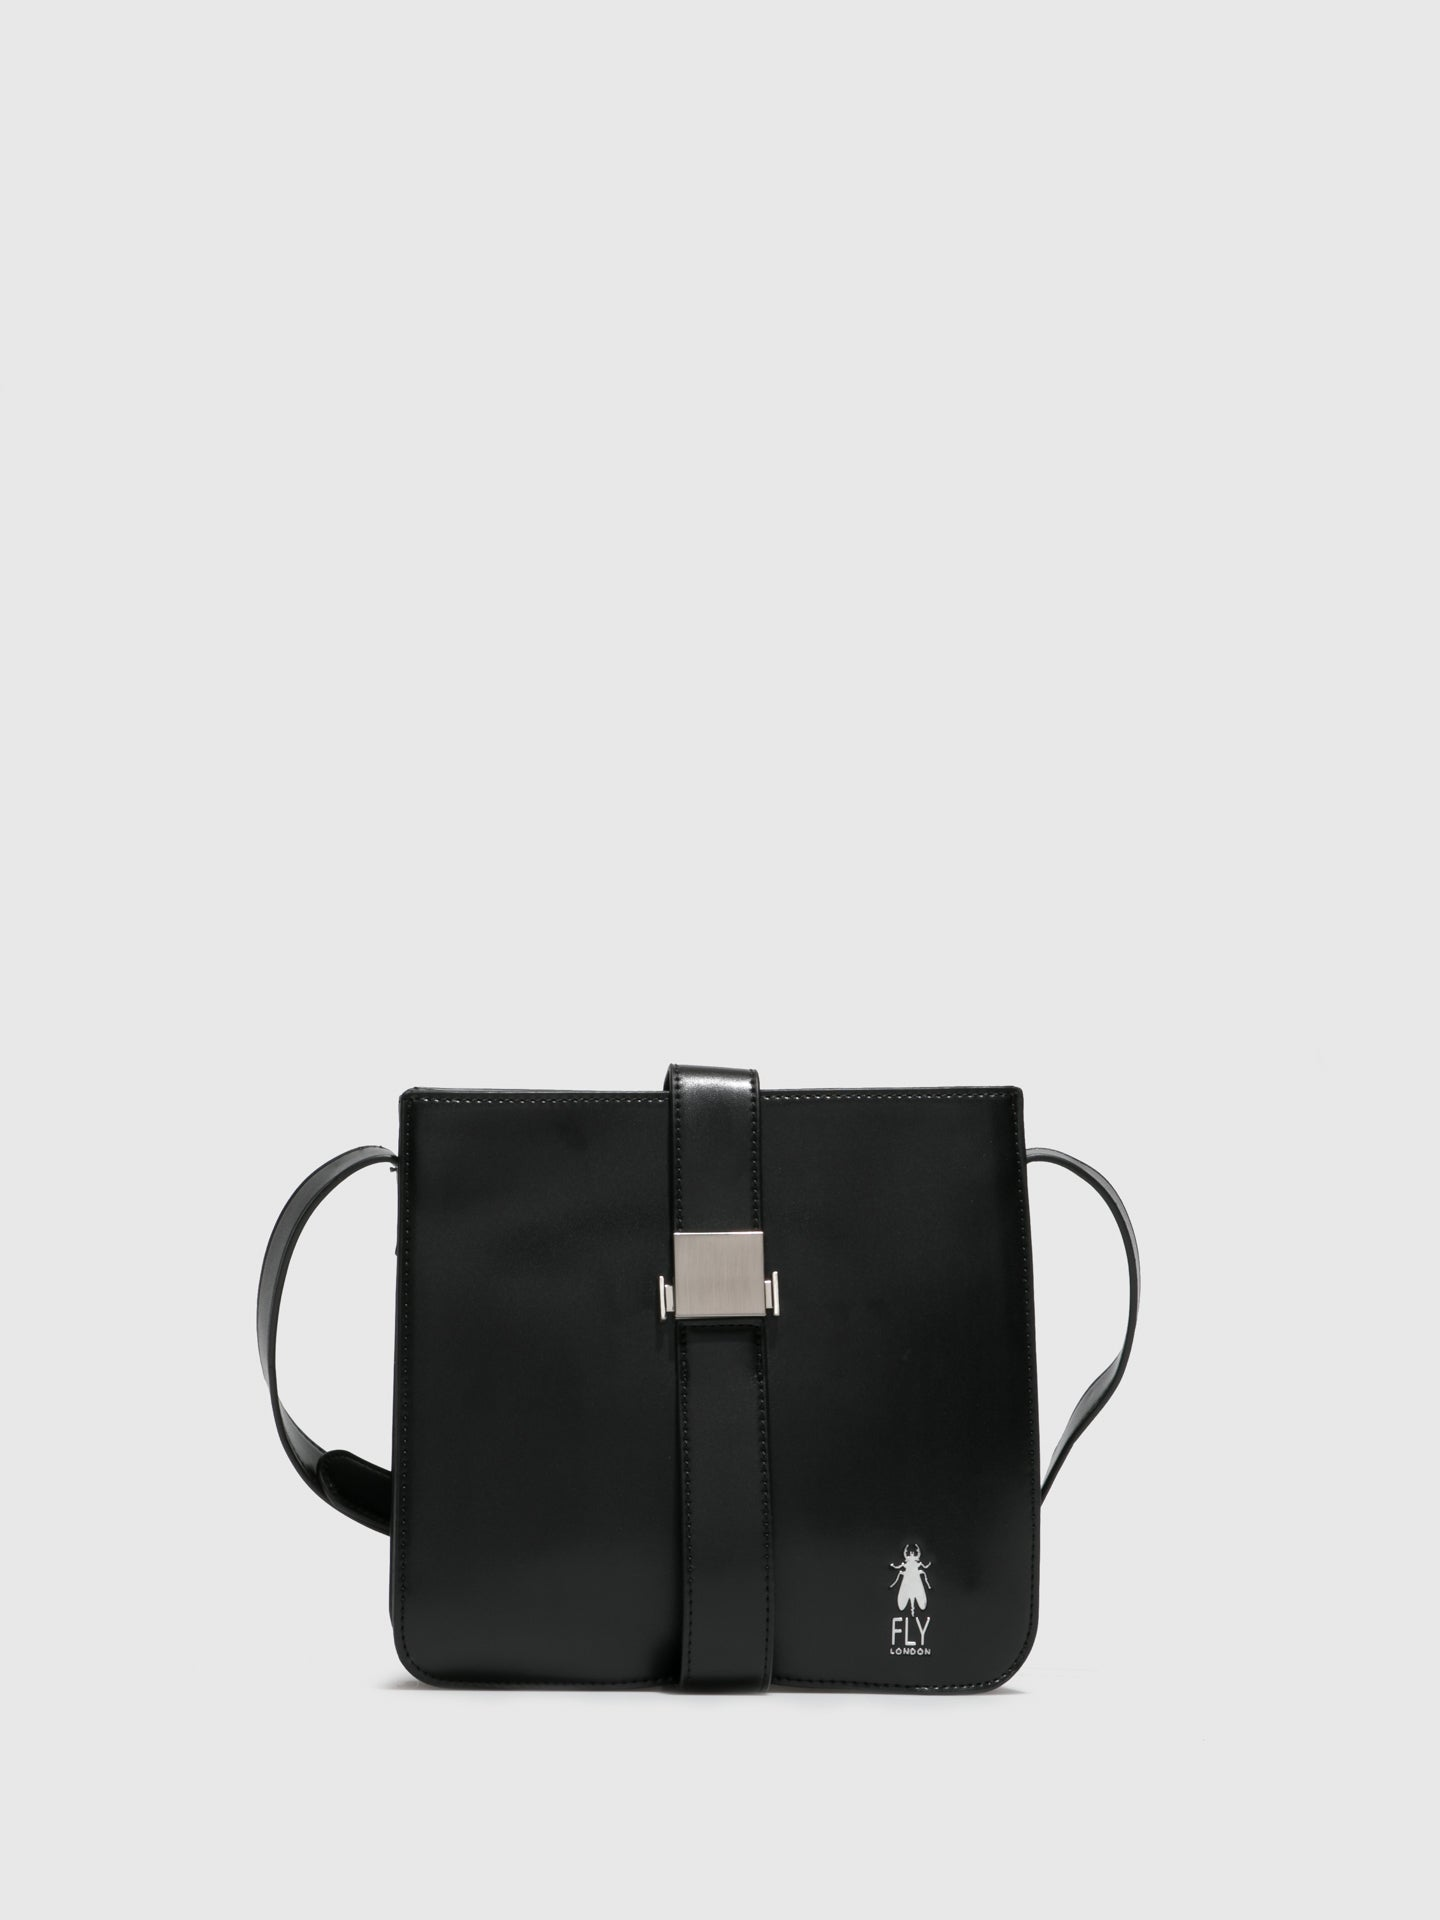 Fly London Shoulder Bags ANJU709FLY COLETTE BLACK